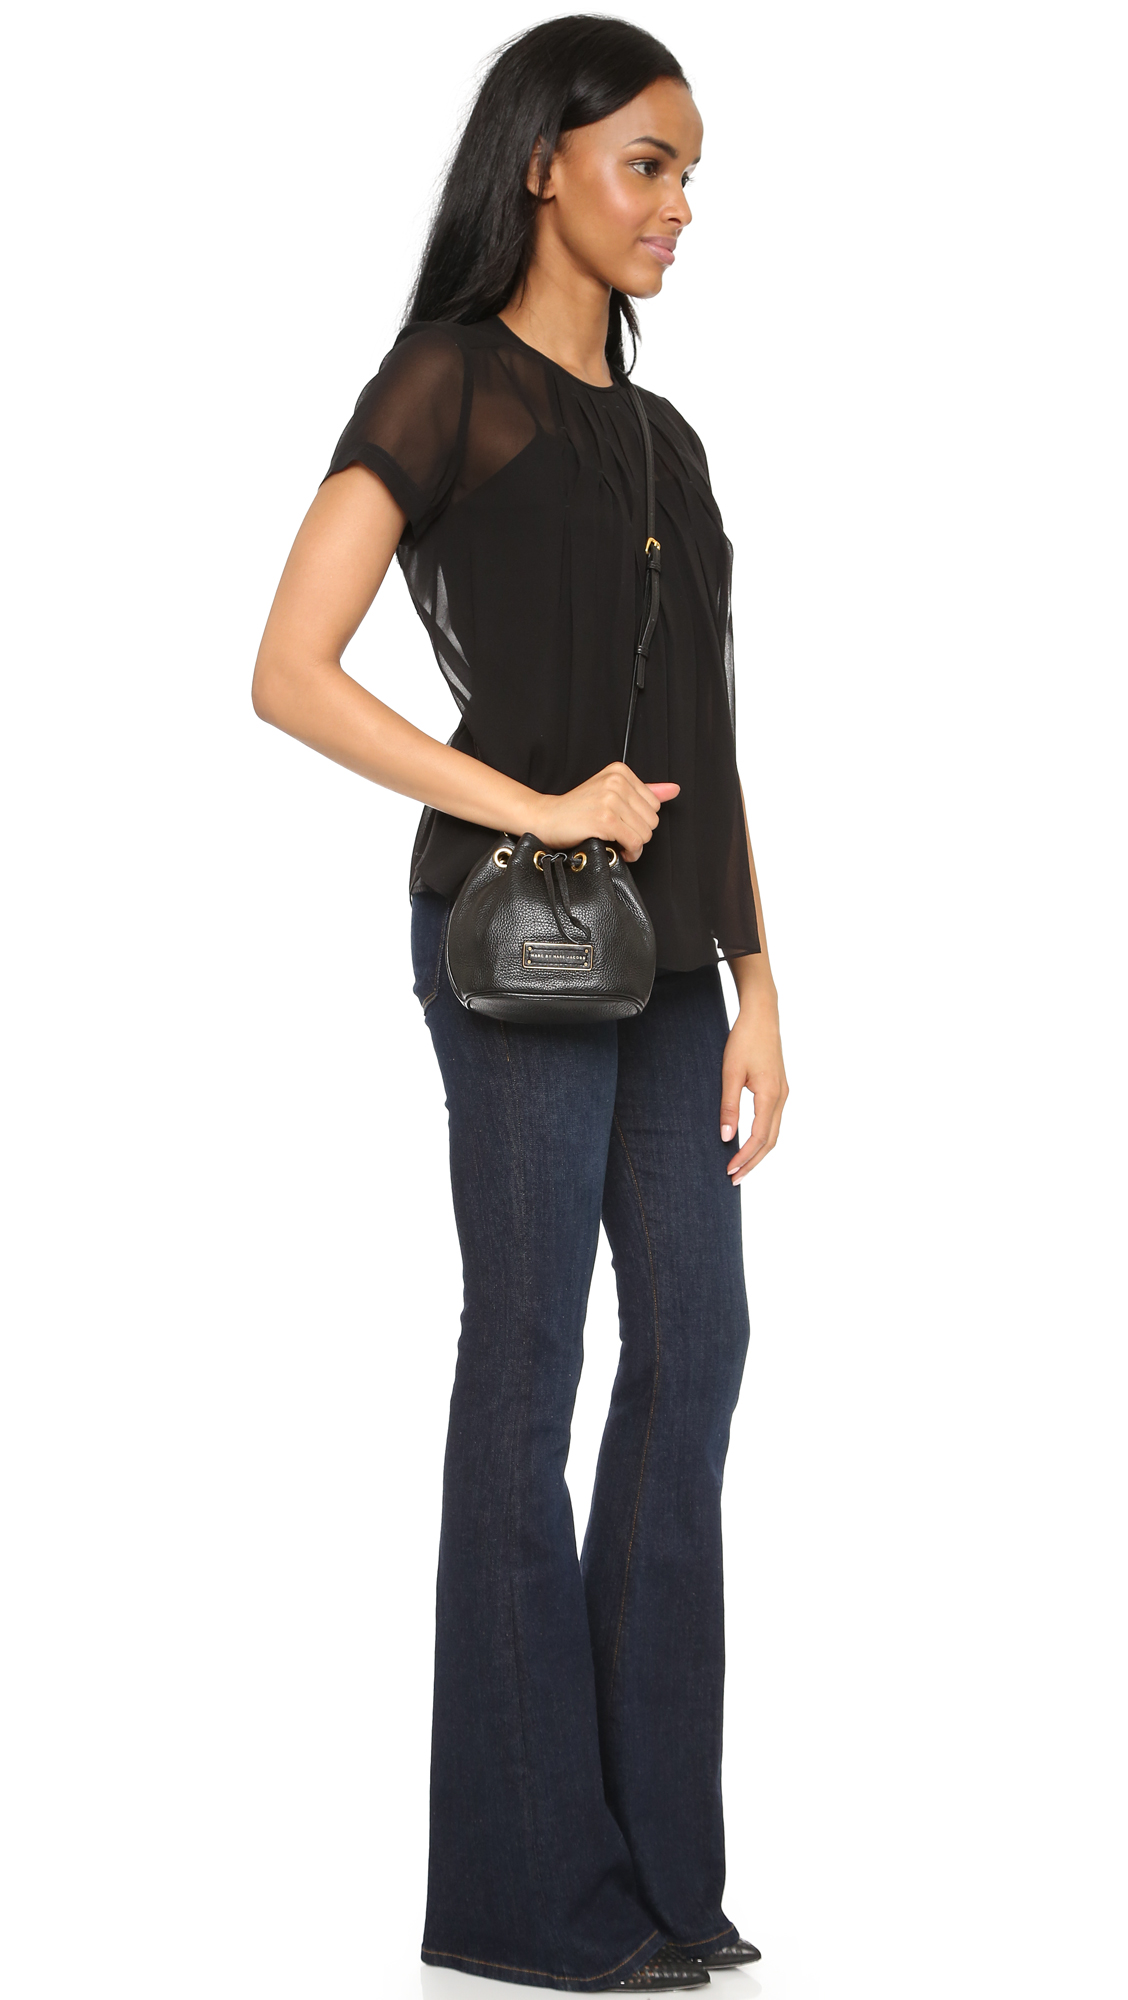 c89deb4cae53 Marc by Marc Jacobs Too Hot To Handle Mini Bucket Bag